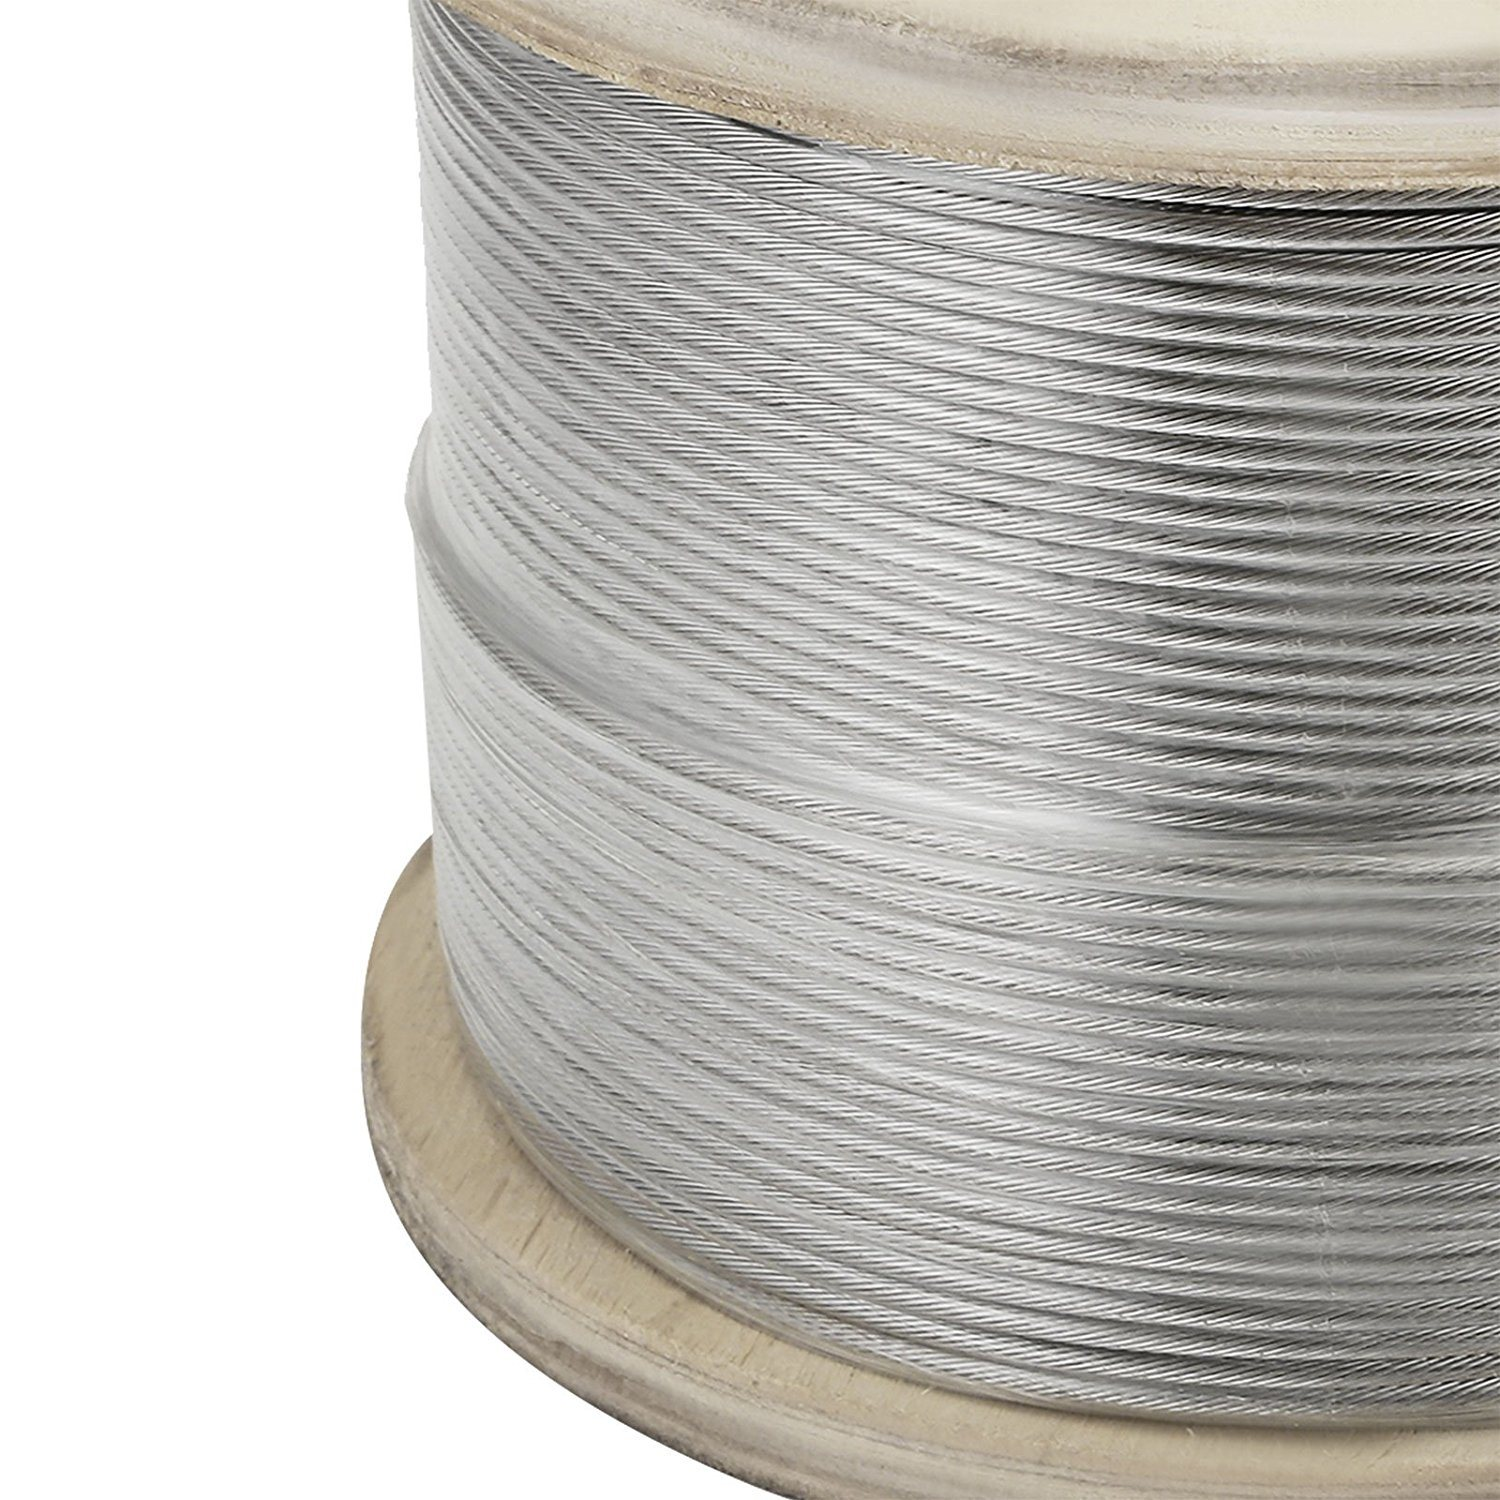 China Ss 316 Stainless Steel Nylon Coated Wire Rope Price Photos ...